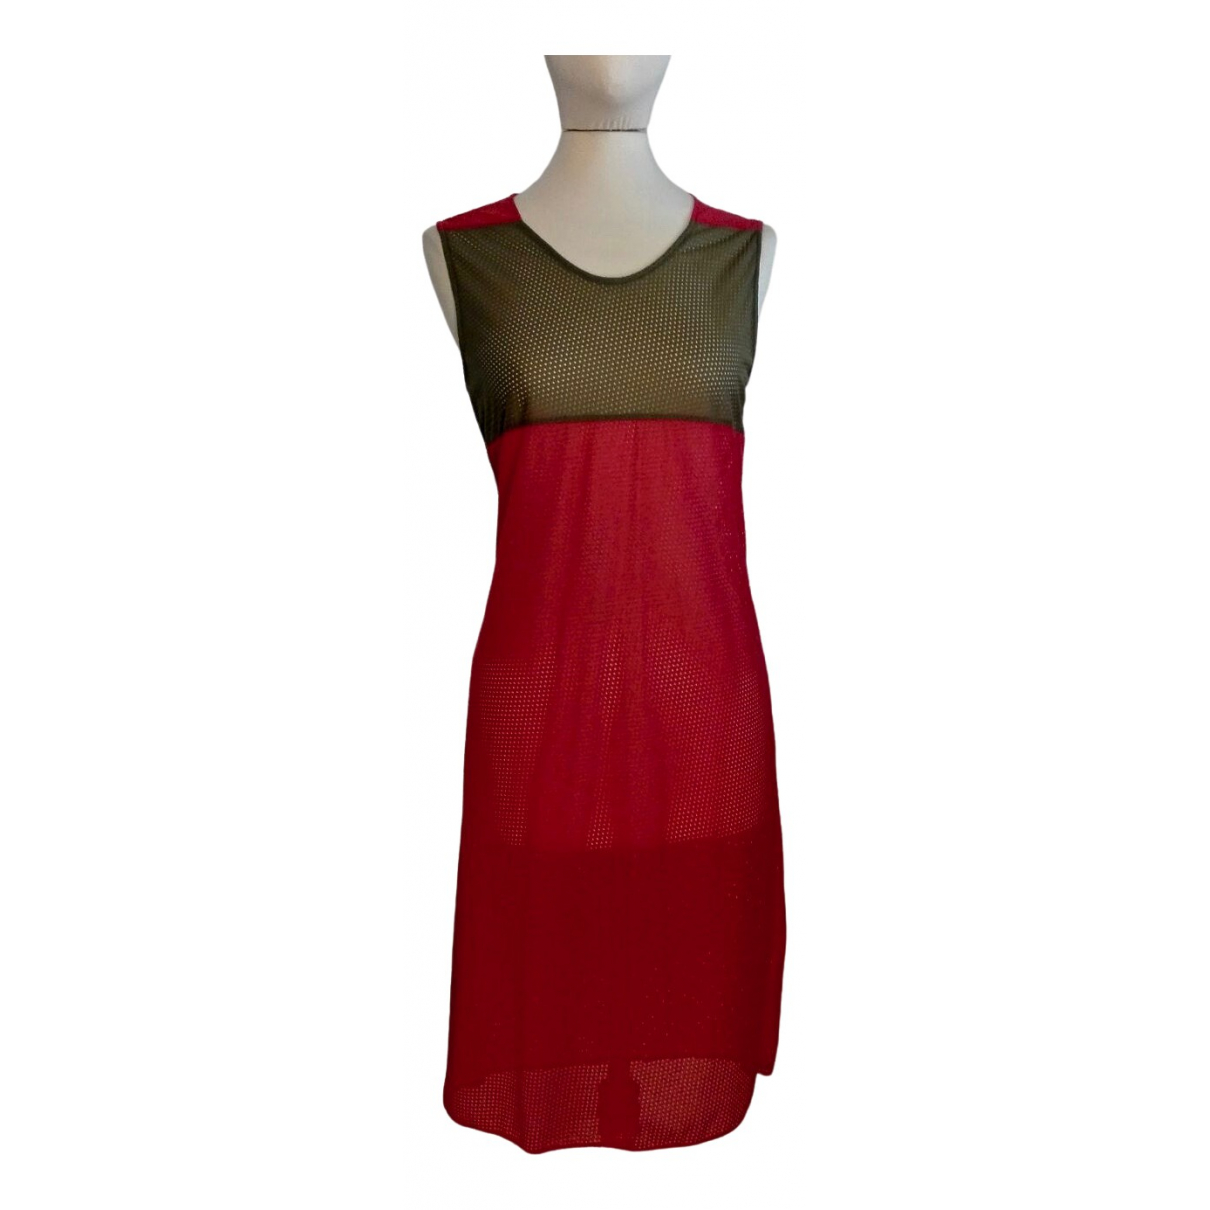 Helmut Lang \N Red dress for Women 42 IT